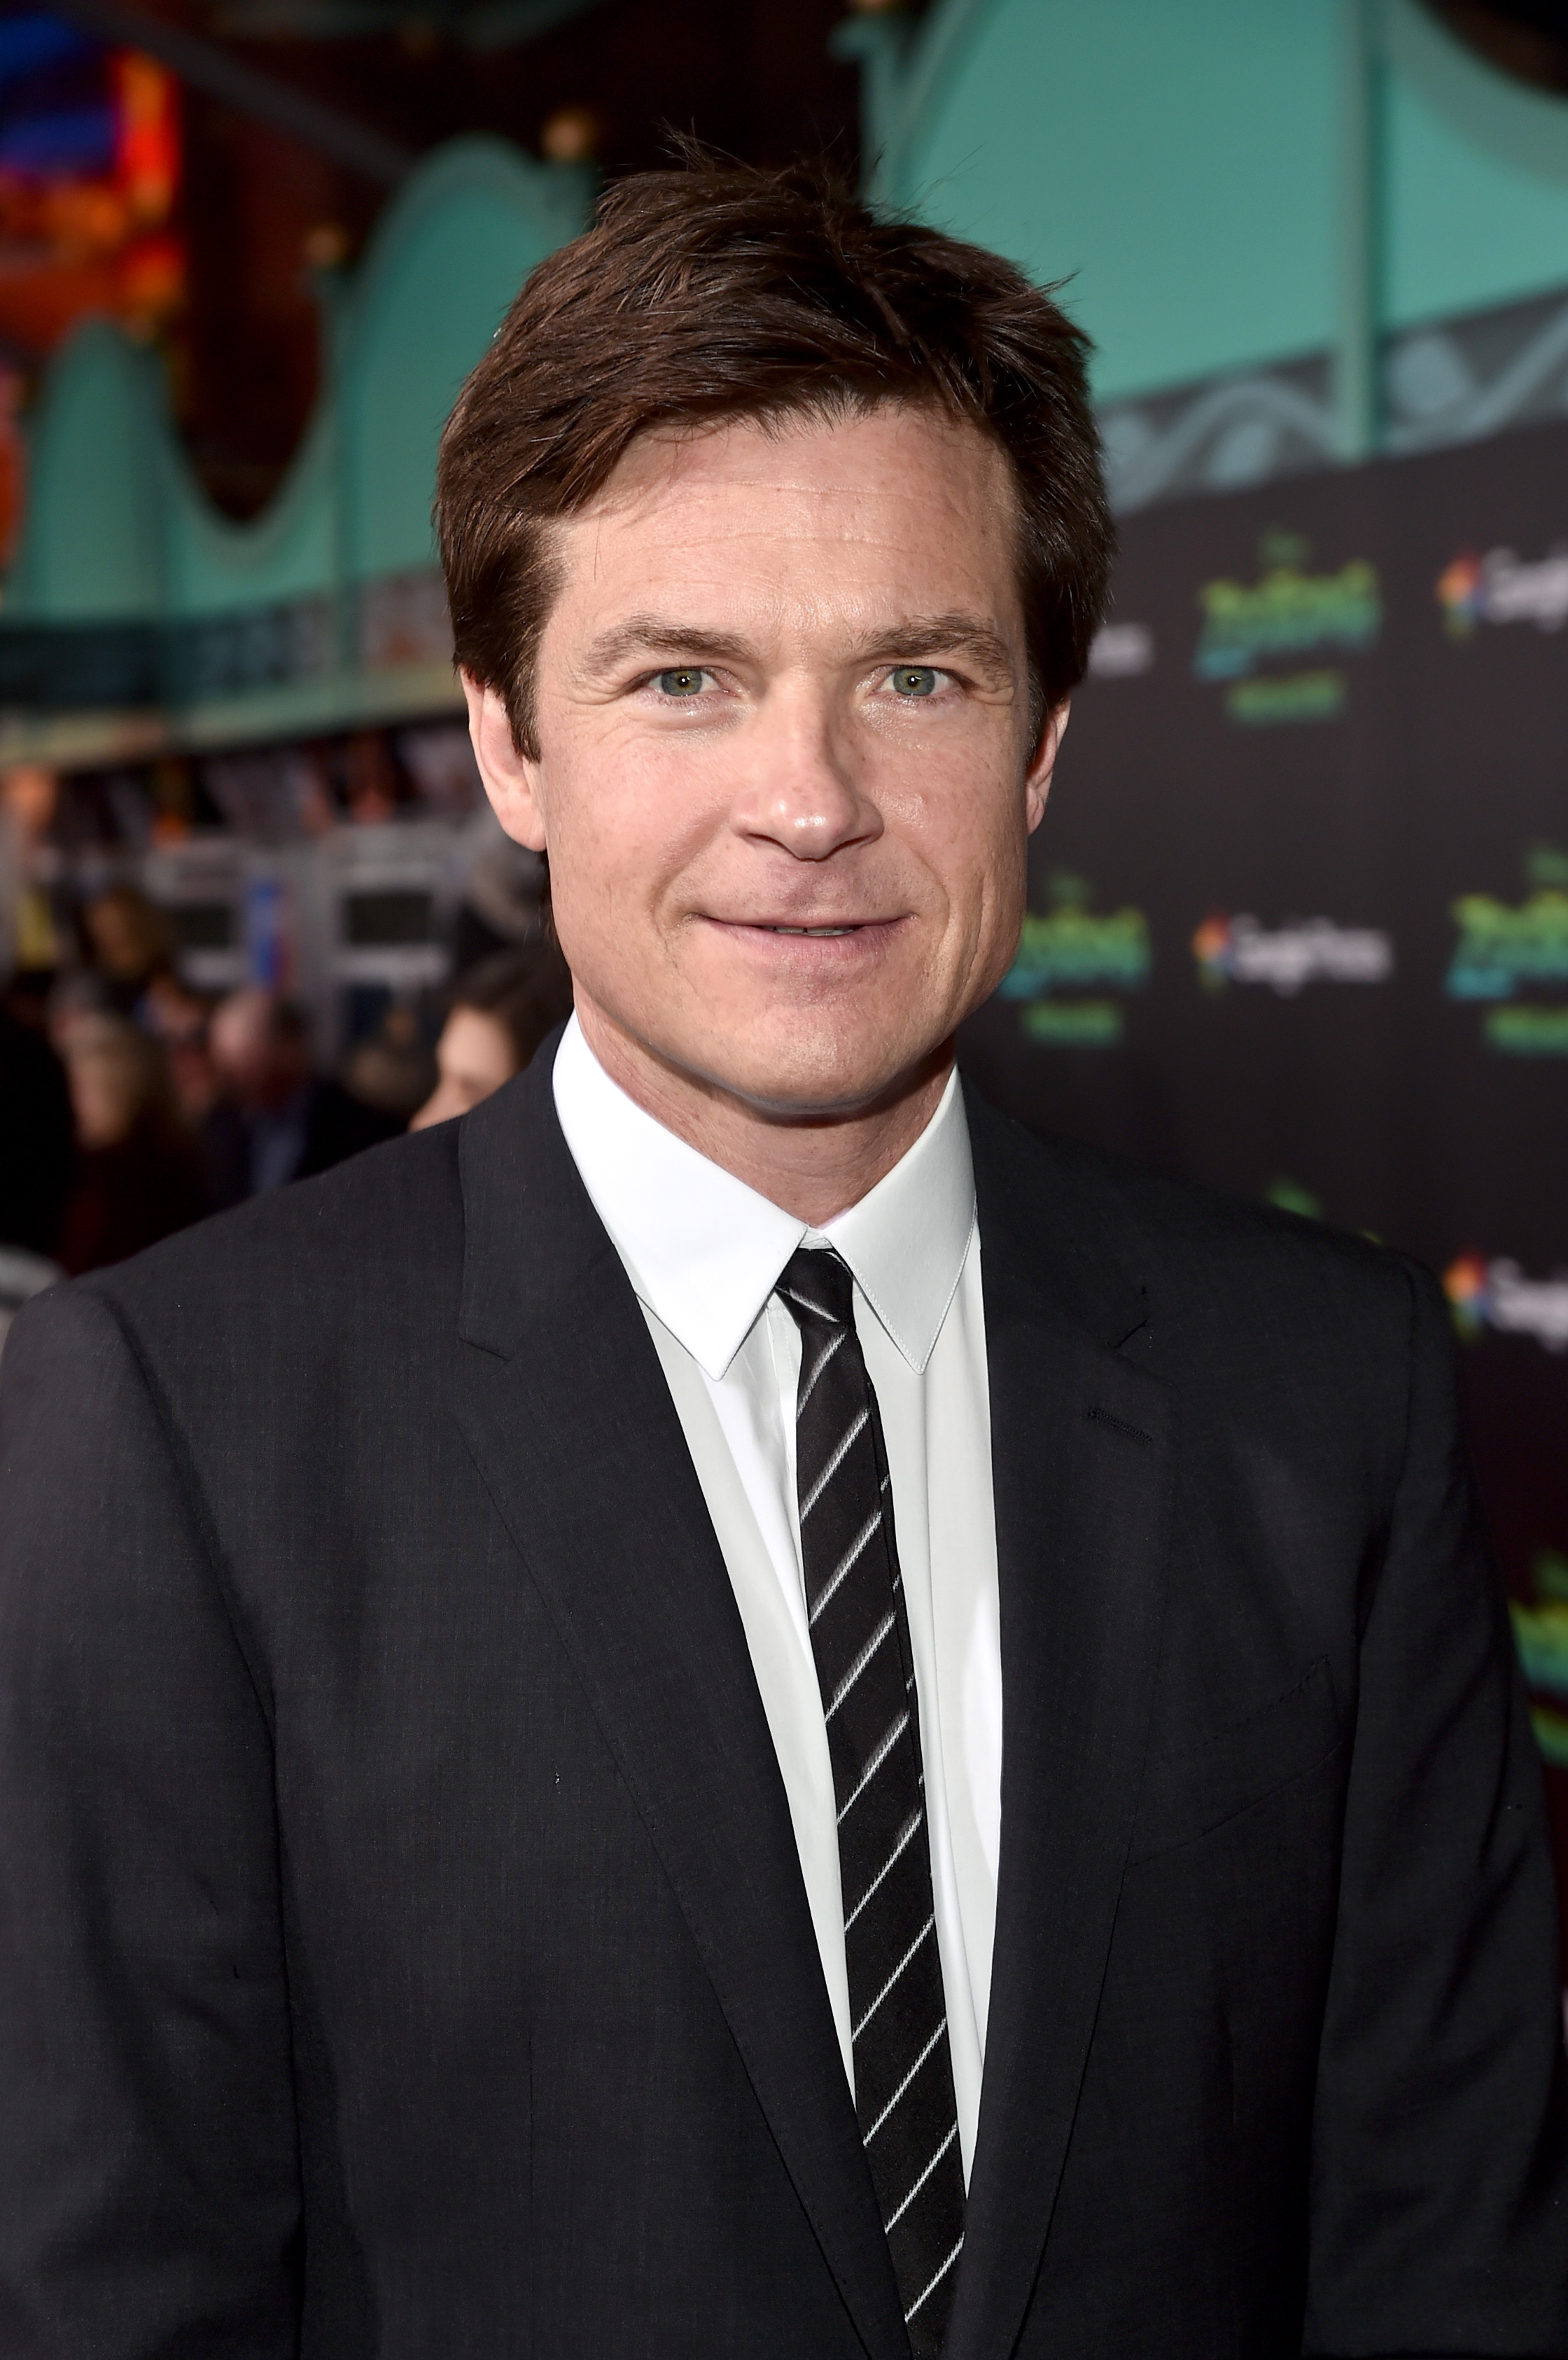 Actor Jason Bateman attends the Los Angeles premiere of Walt Disney Animation Studios' 'Zootopia' (Photo by Alberto E. Rodriguez/Getty Images for Disney)